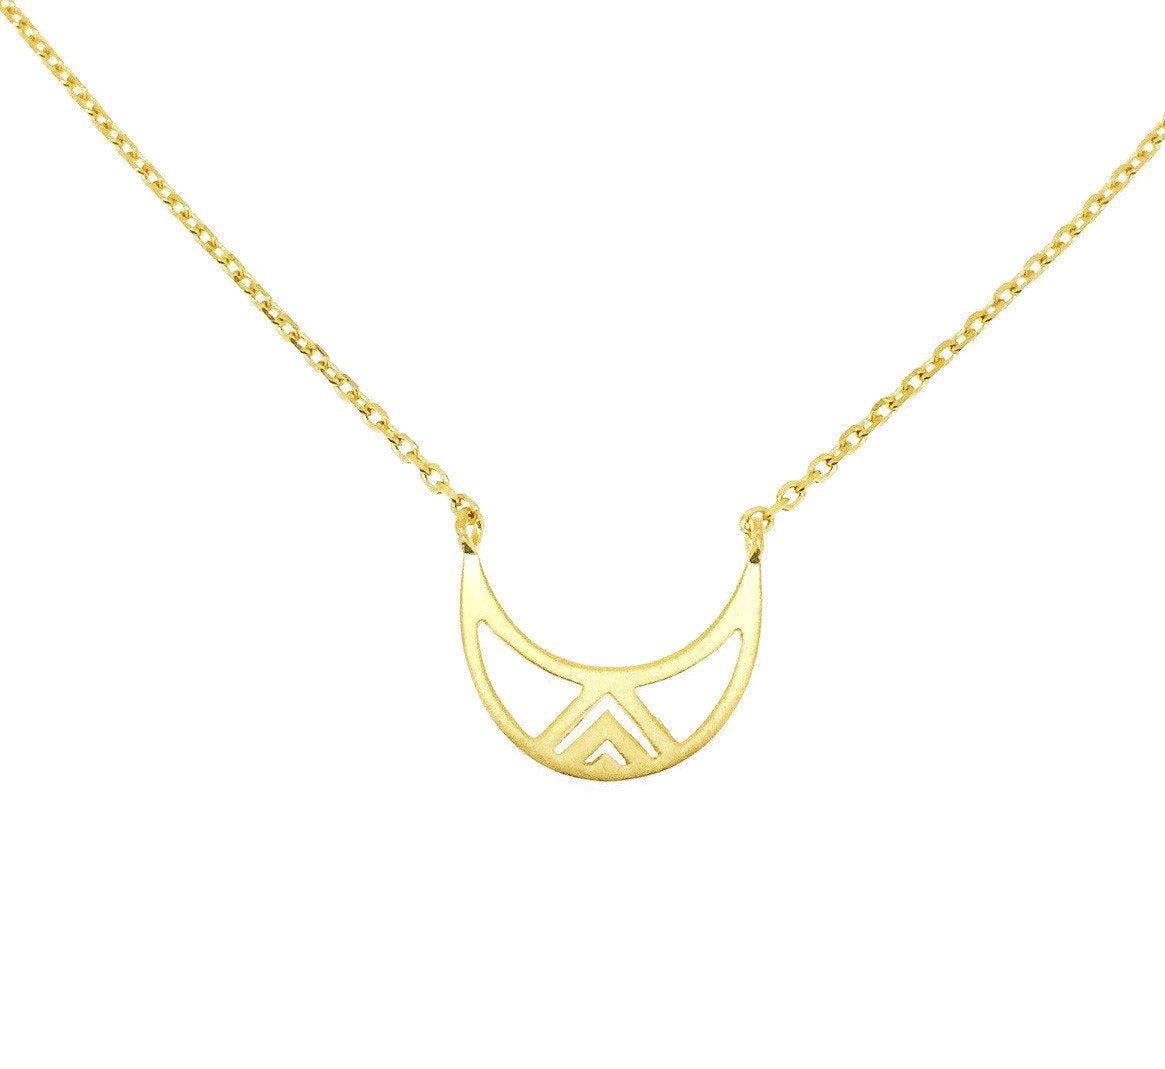 Sterling silver necklace with crescent moon pendant - Yellow Gold